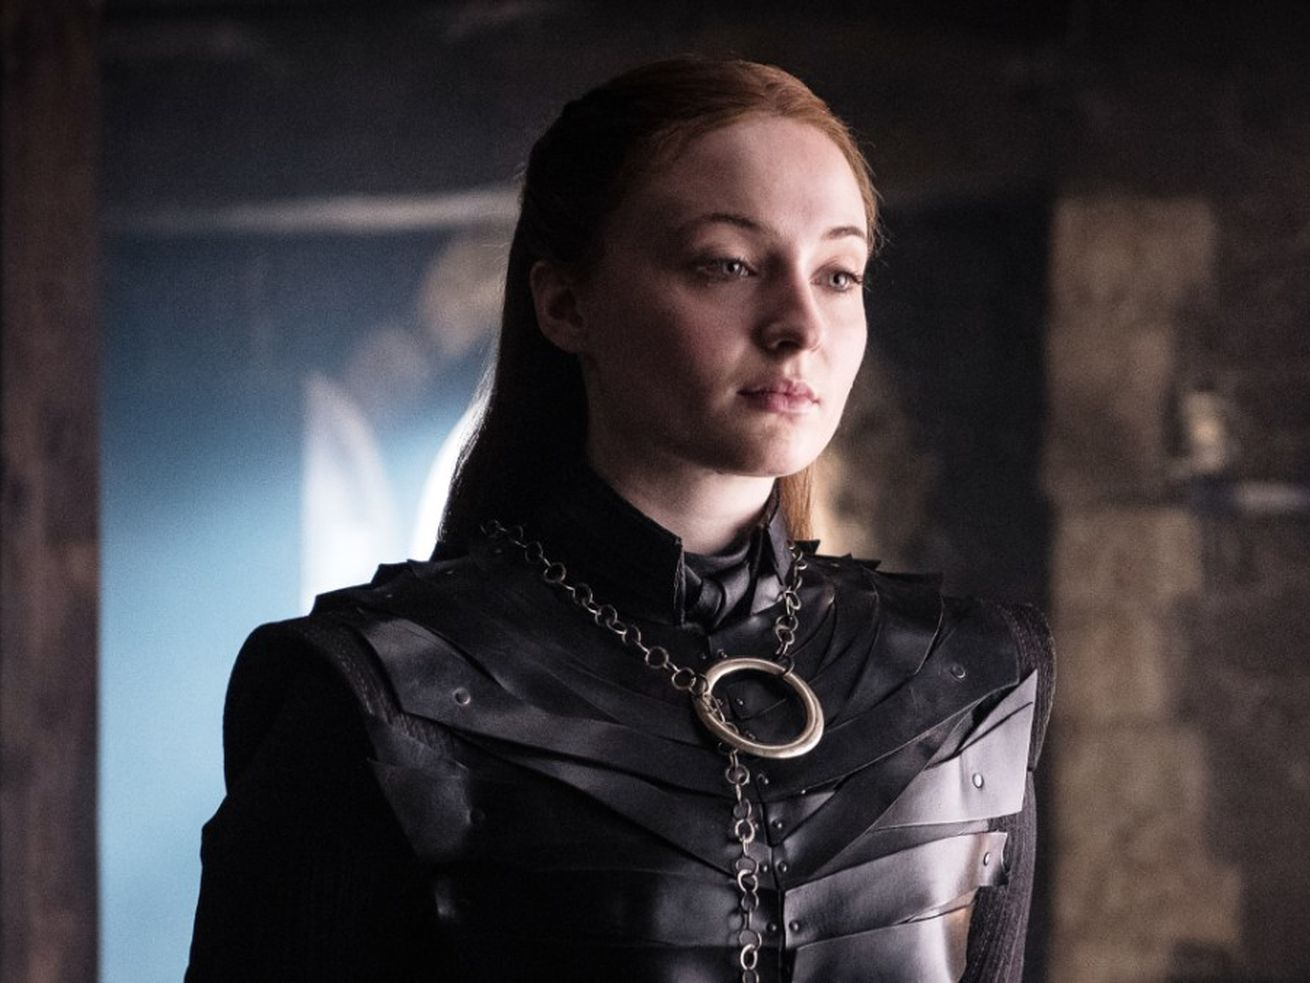 Sansa Stark's leather armor shows why you shouldn't underestimate her